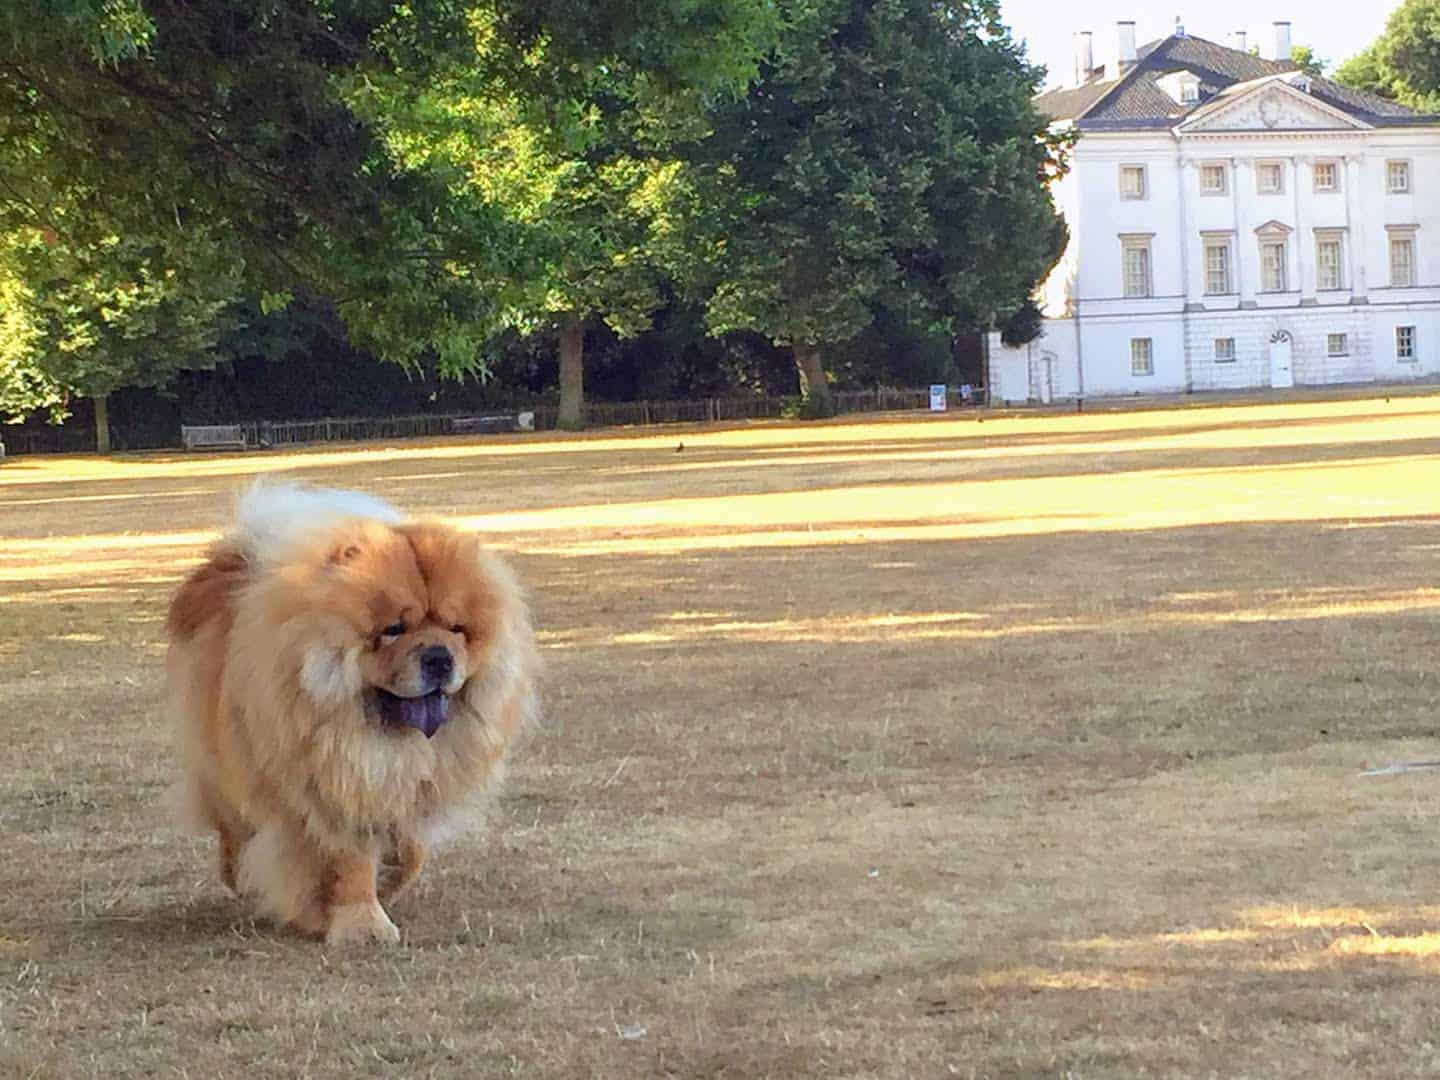 My Dog Friendly London Richmond Clover the Chow Chow 2